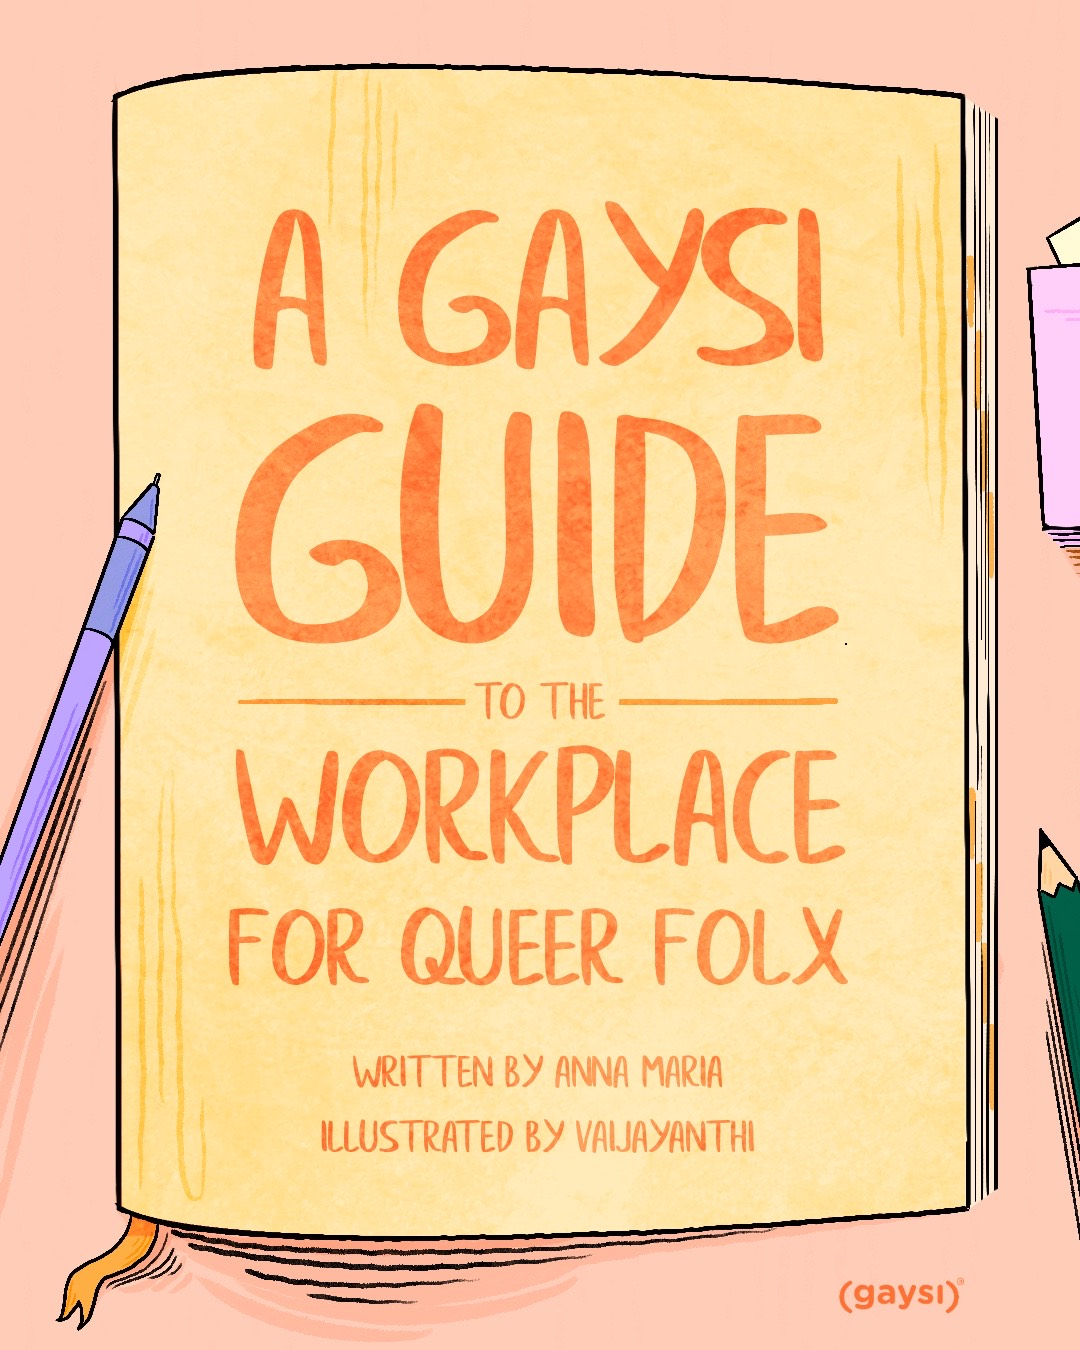 A Gaysi Guide To The Workplace For Queer Folx